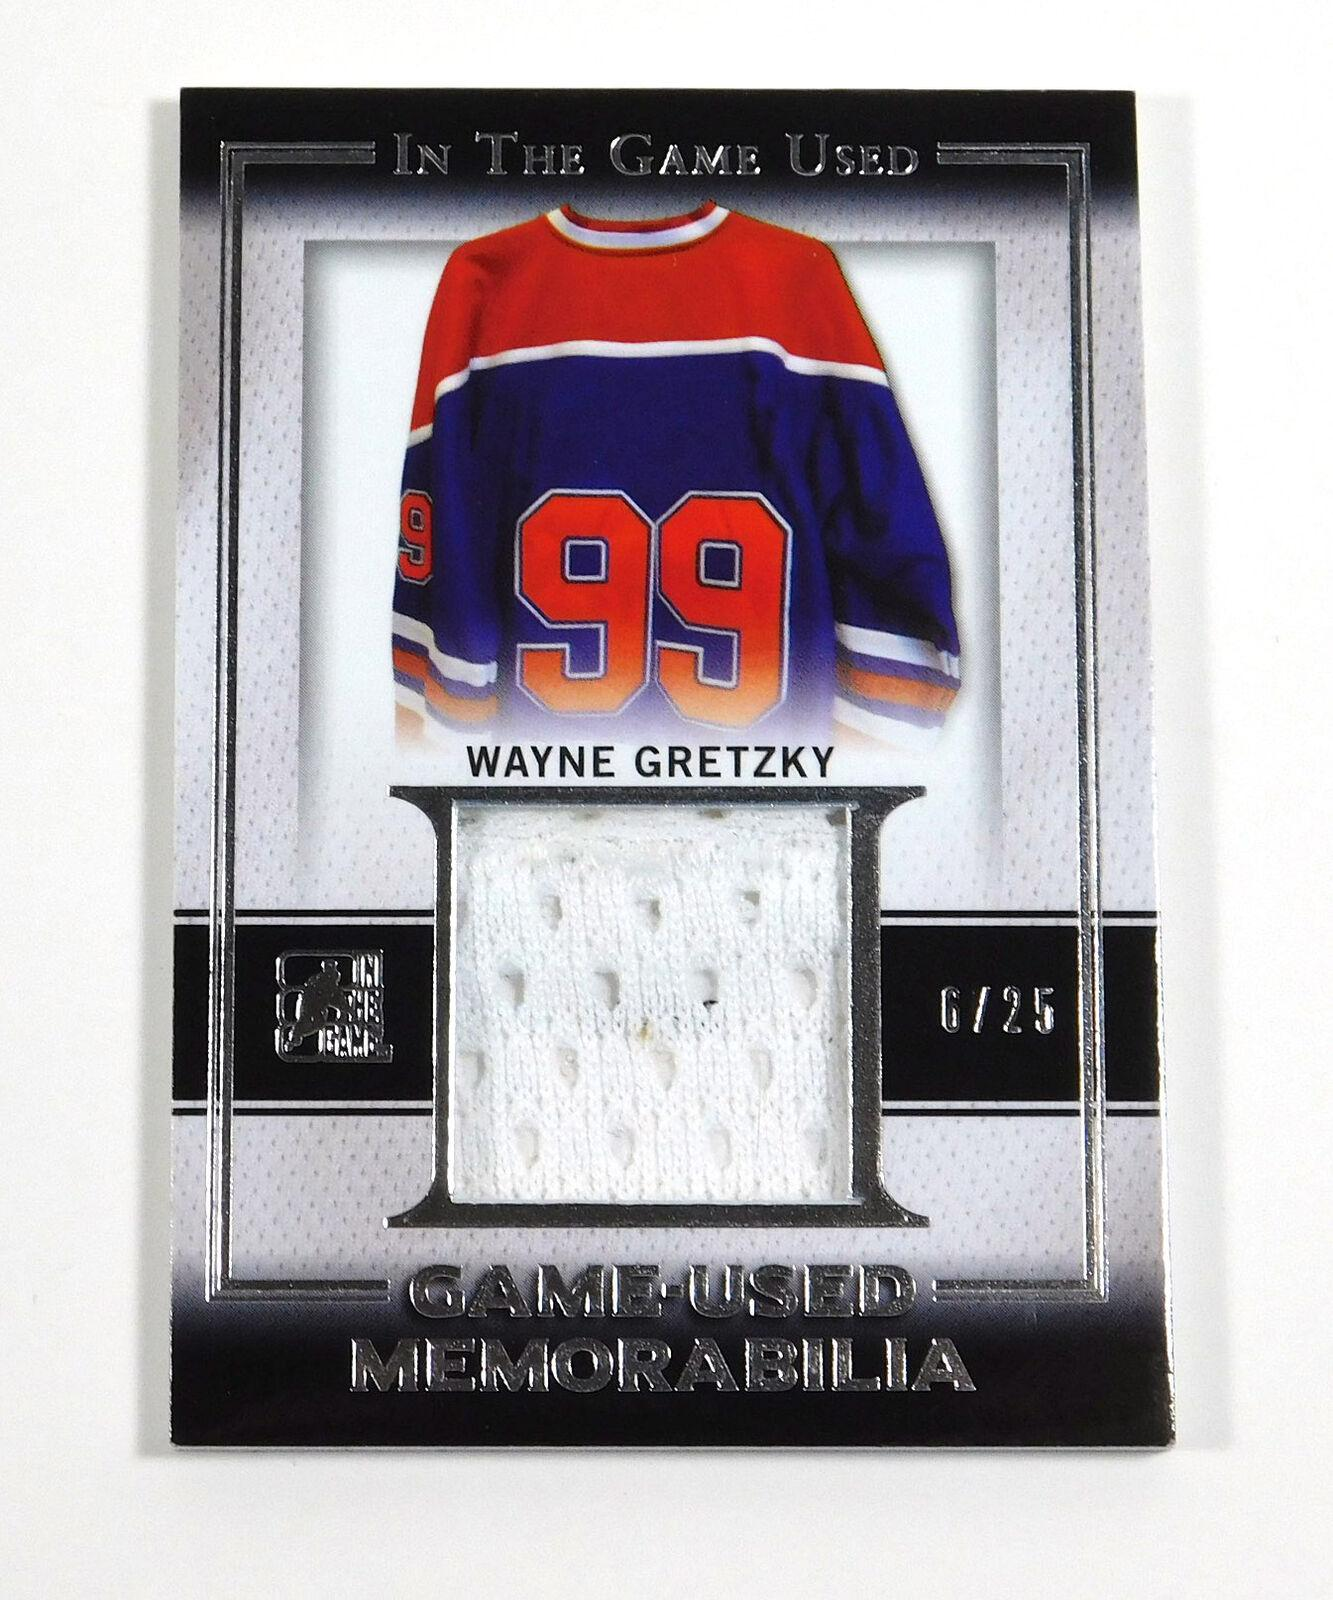 newest c5e57 4bff6 2016-17 ITG In The Game Used Wayne Gretzky Game Used Memorabilia Jersey /25  · The World Table Hockey Association, Inc.